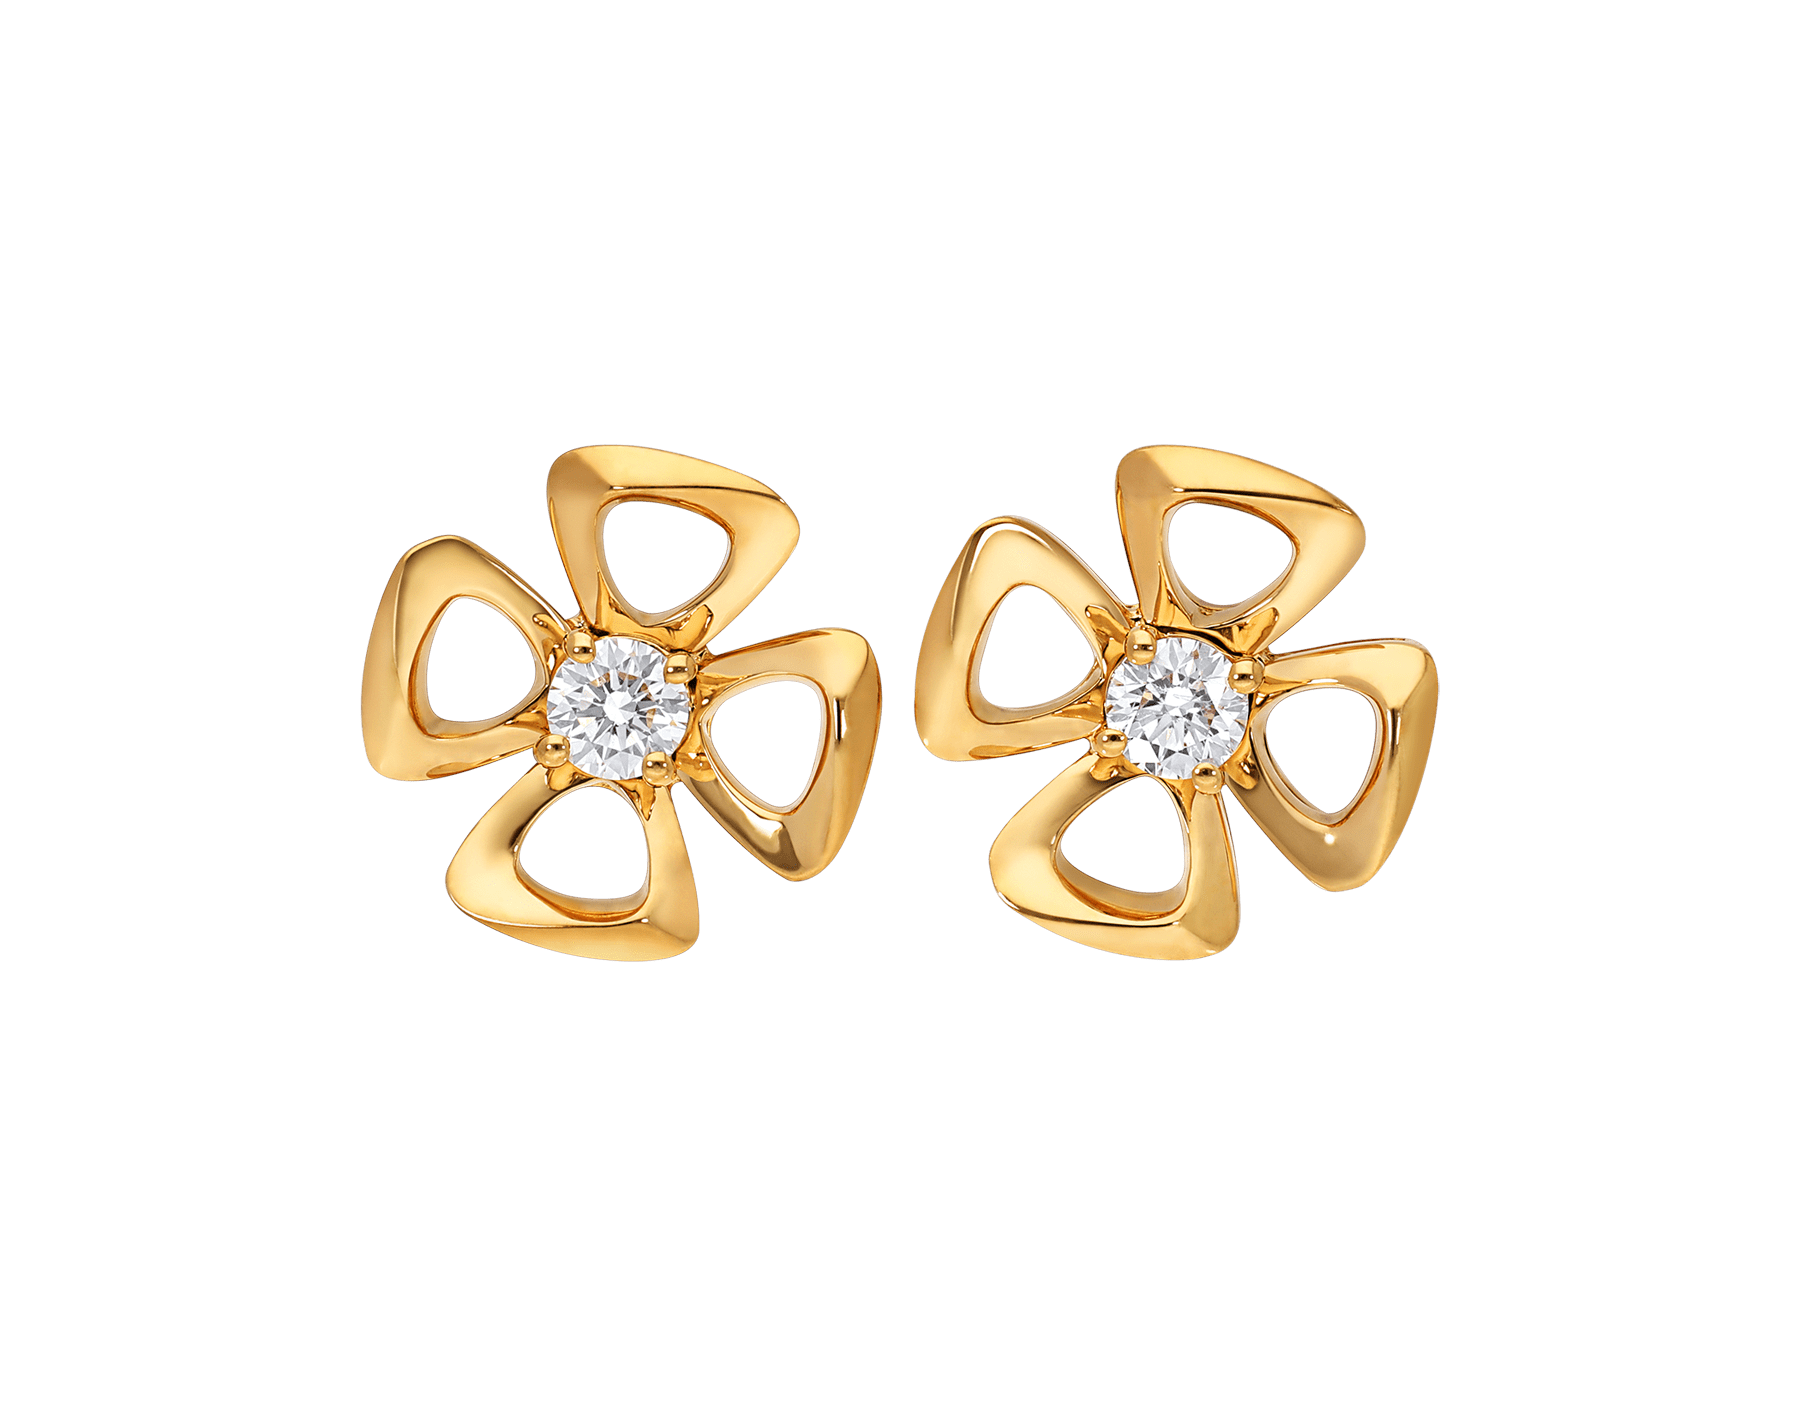 Fiorever 18 kt yellow gold stud earrings set with two central diamonds (0.10 ct each) 357503 image 1